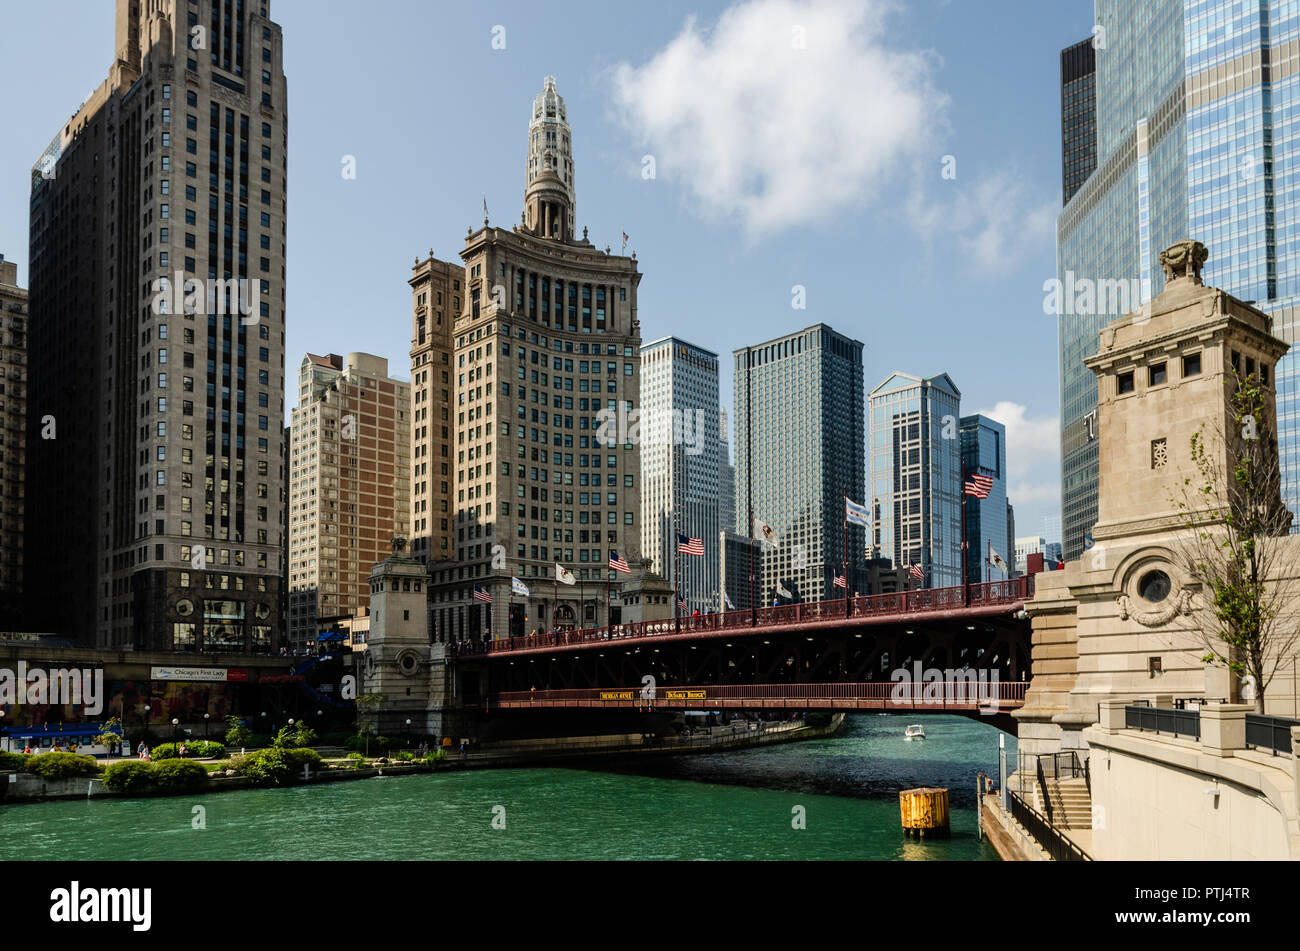 London Guarantee Building & DuSable Bridge in Chicago Stock Photo